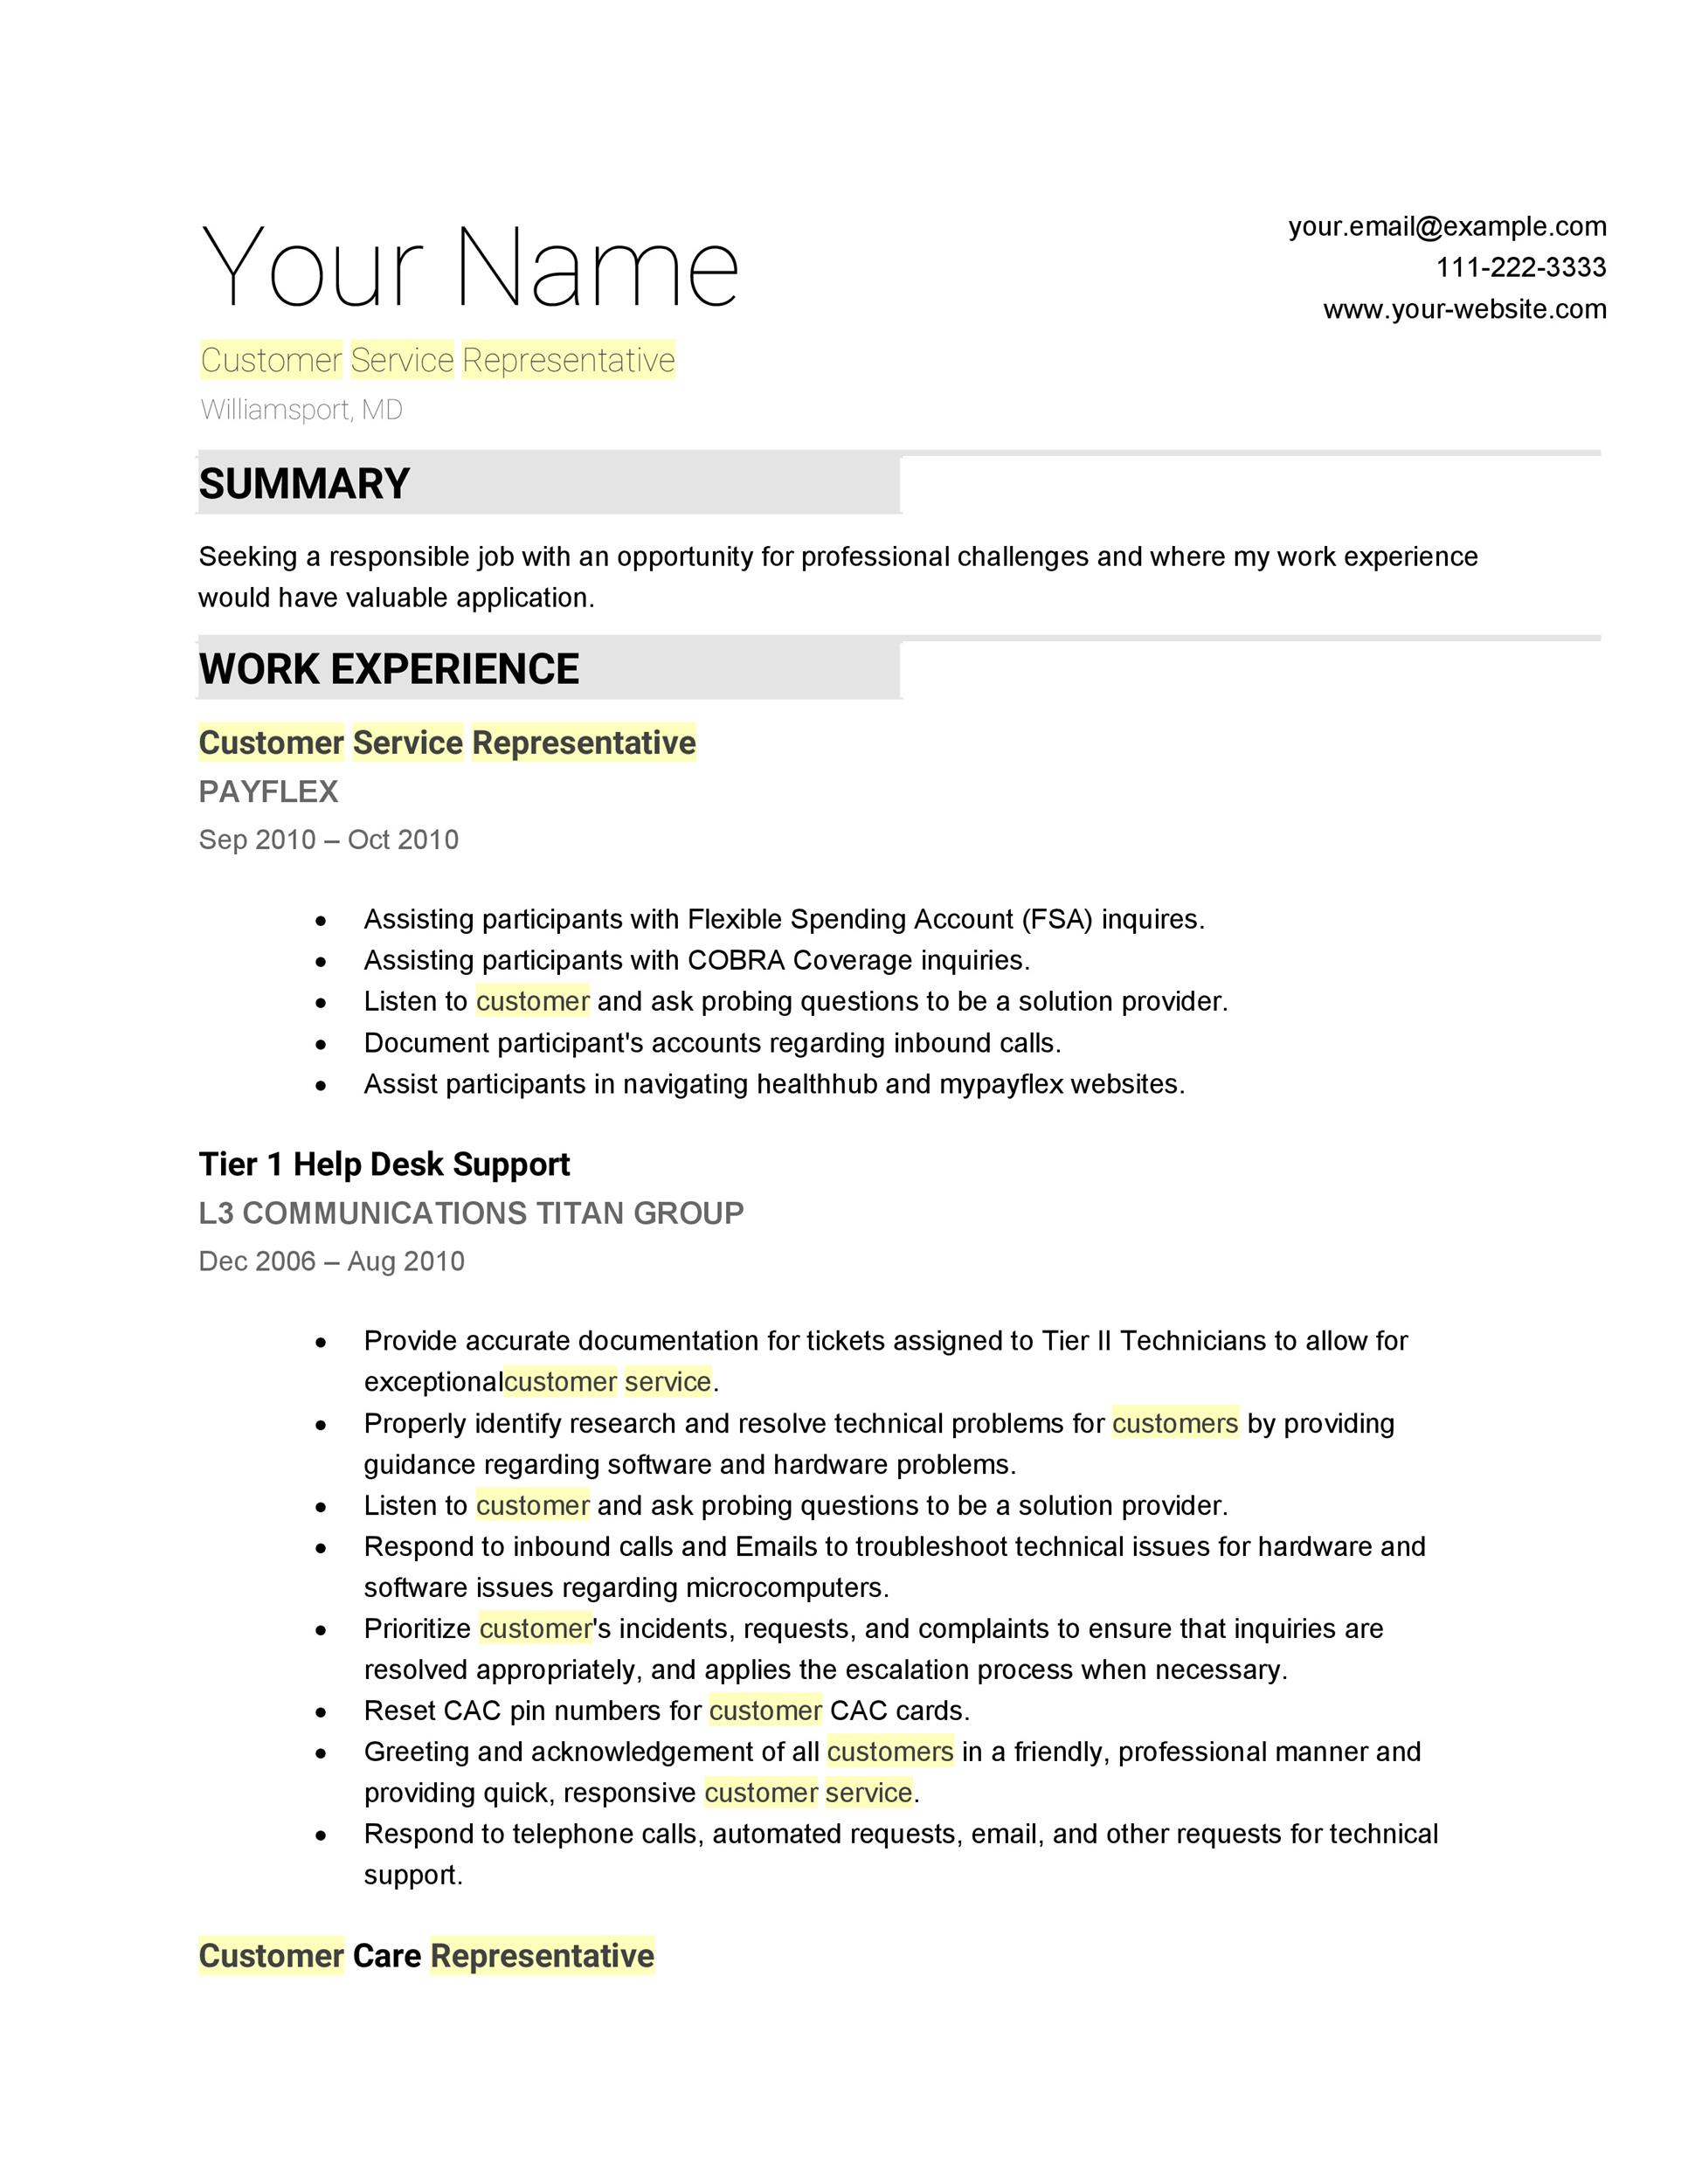 customer service experience for resume